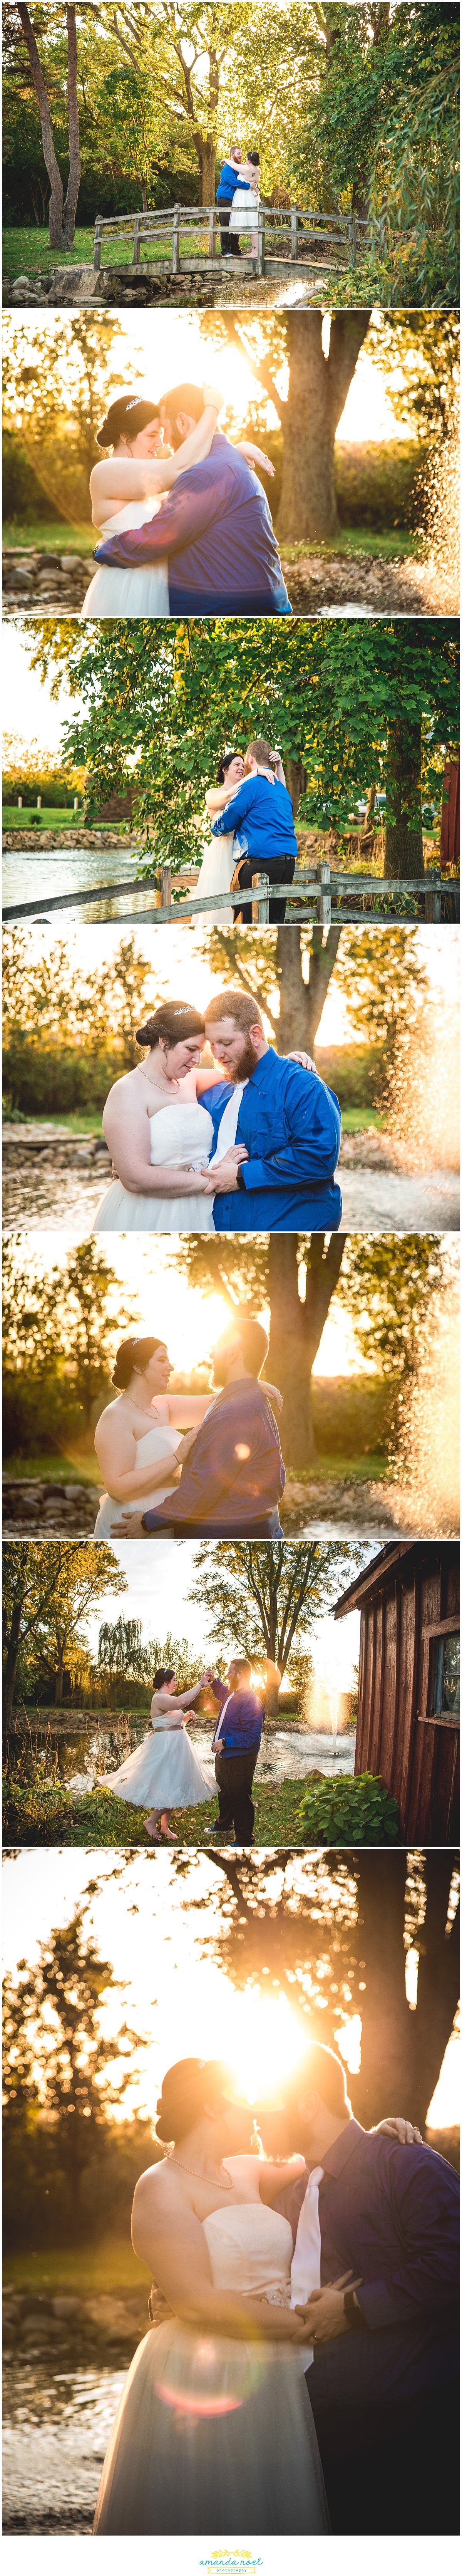 Dayton Ohio Wedding Photographer | Amanda Noel Photography